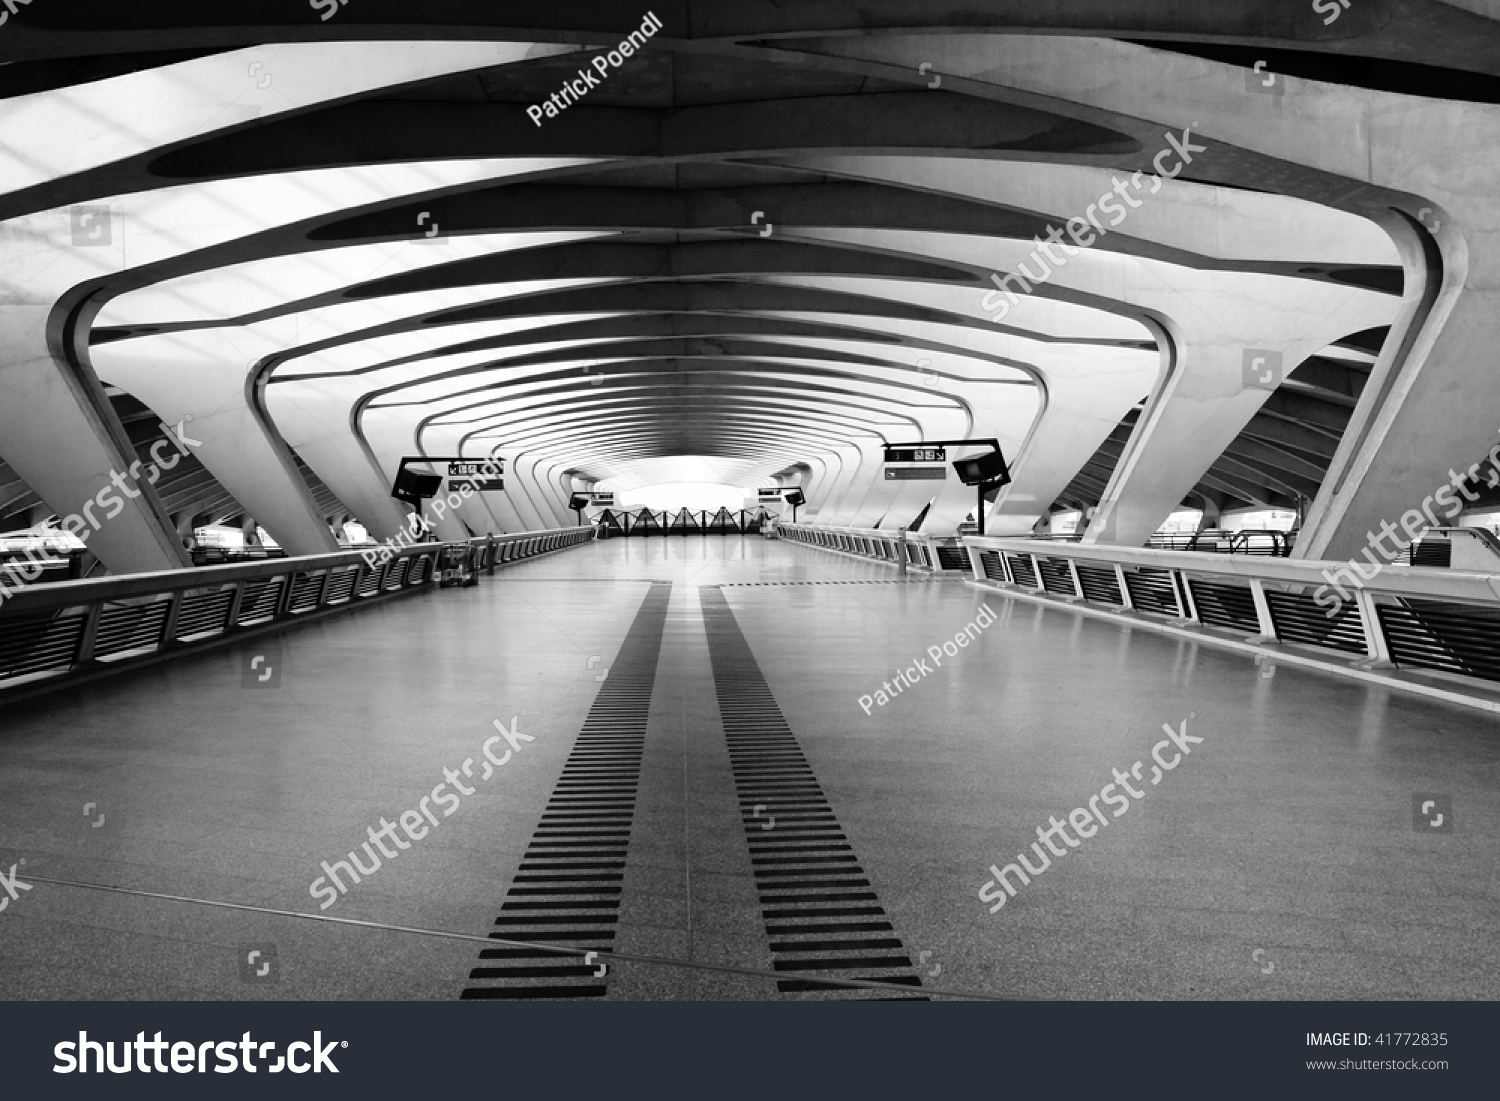 Modern Architecture France modern architecture long passage way train stock photo 41772835